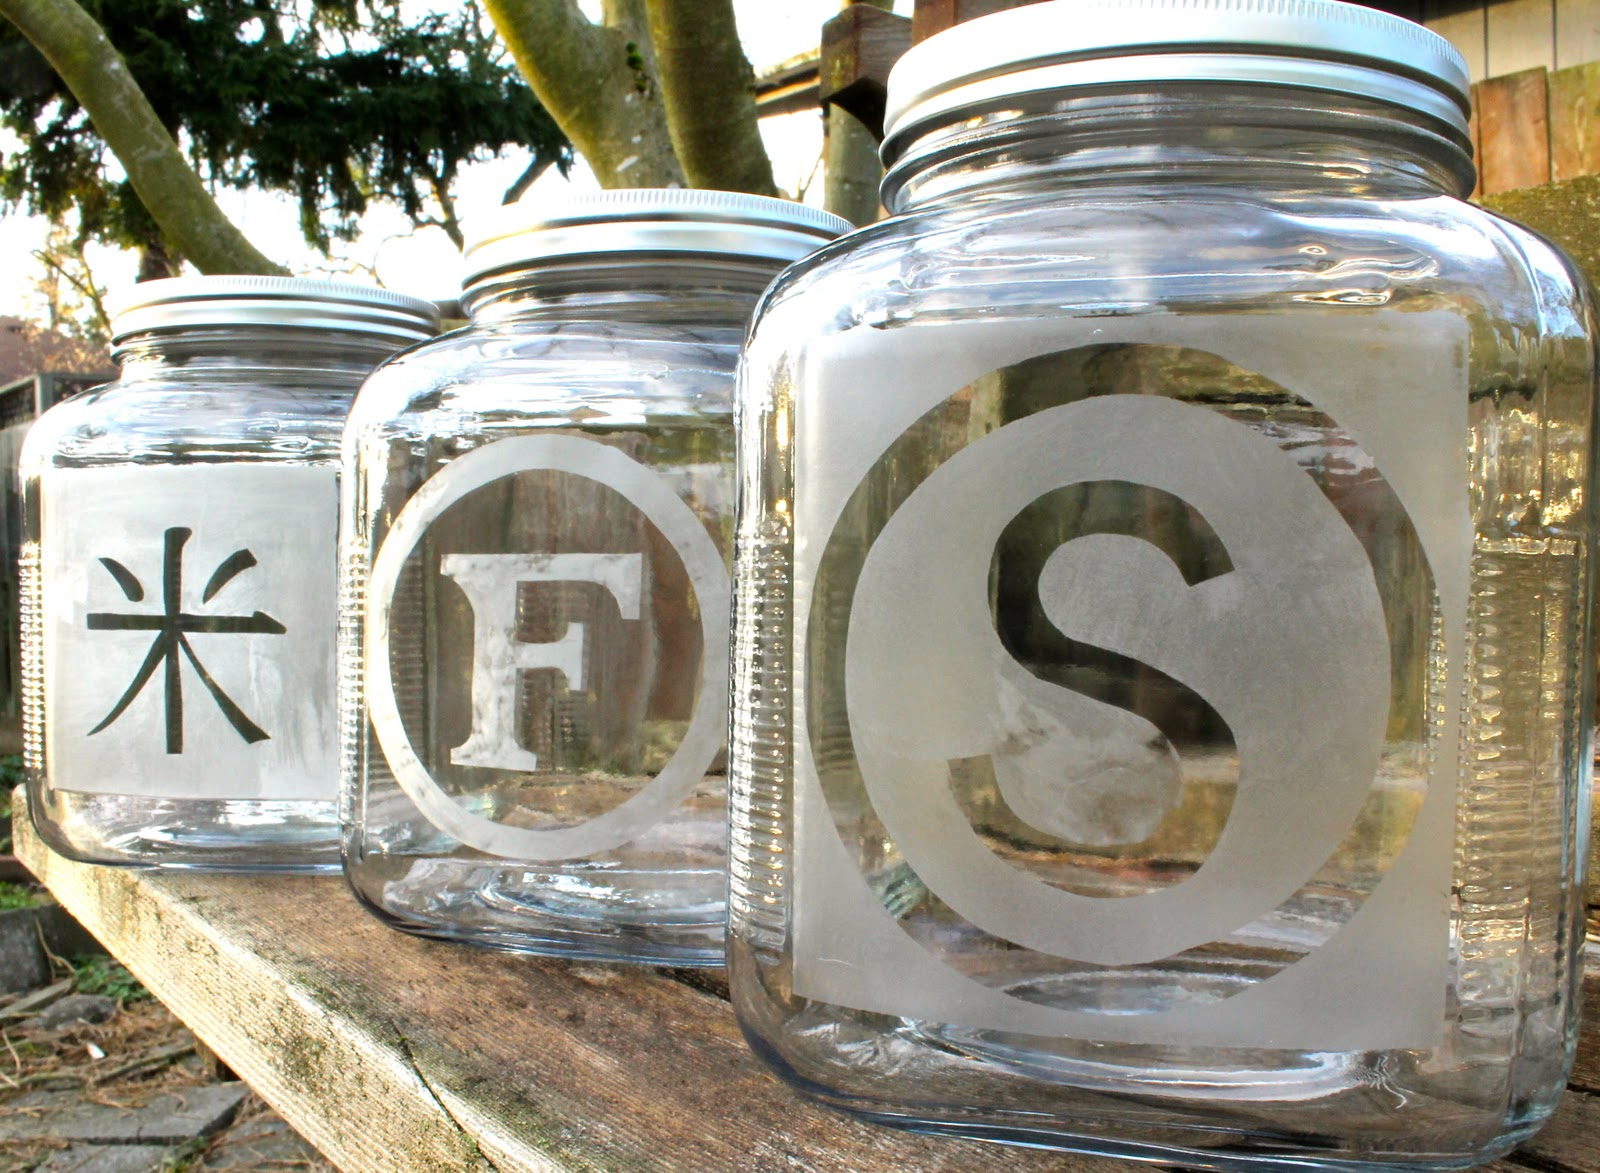 Jars with initials etched into their surface